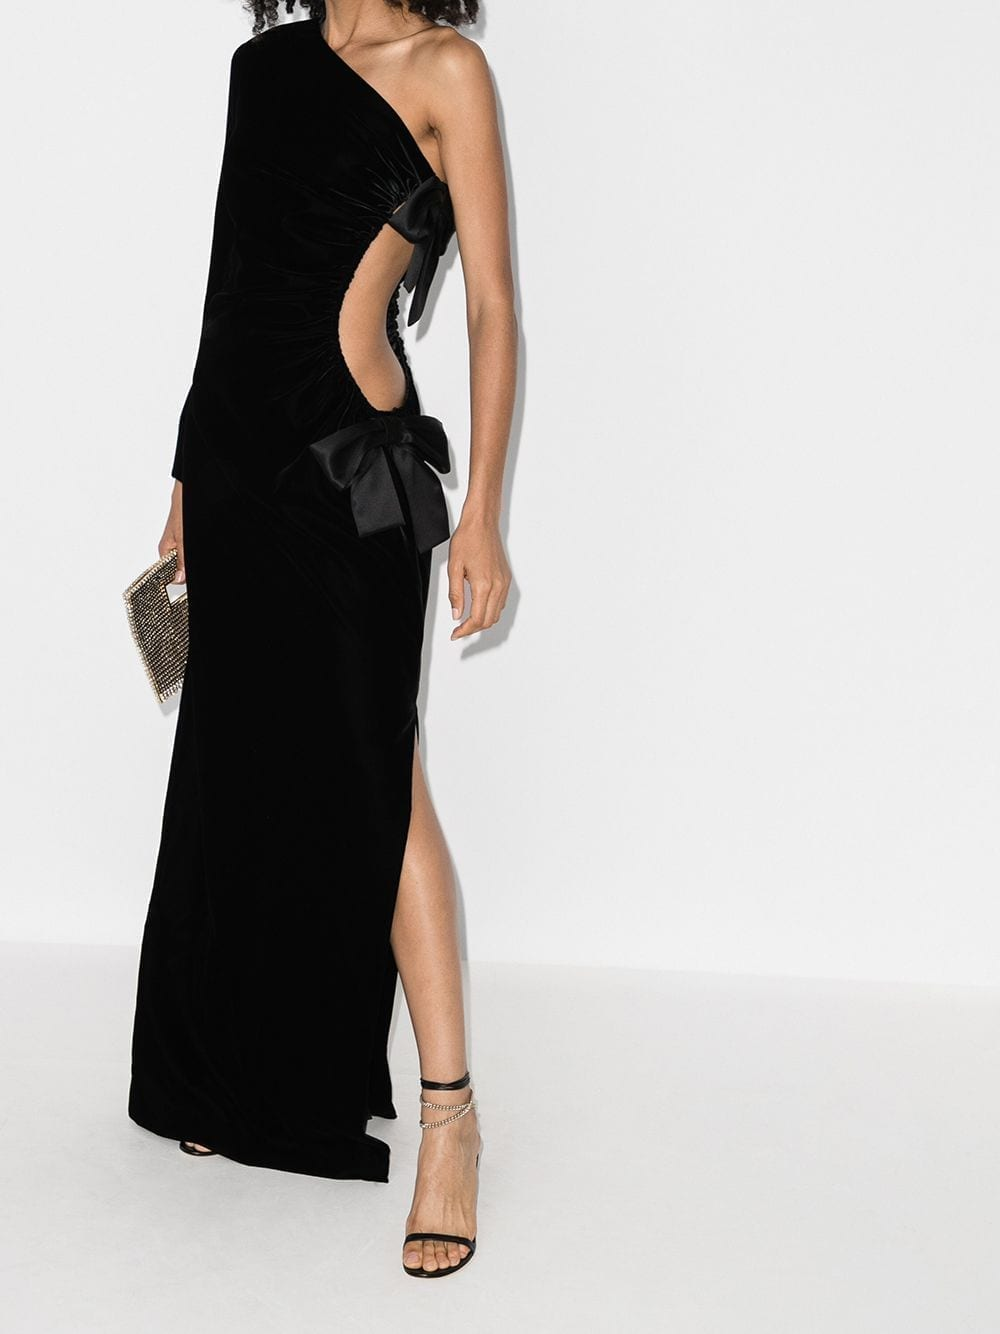 SAINT LAURENT One-shoulder Evening Gown